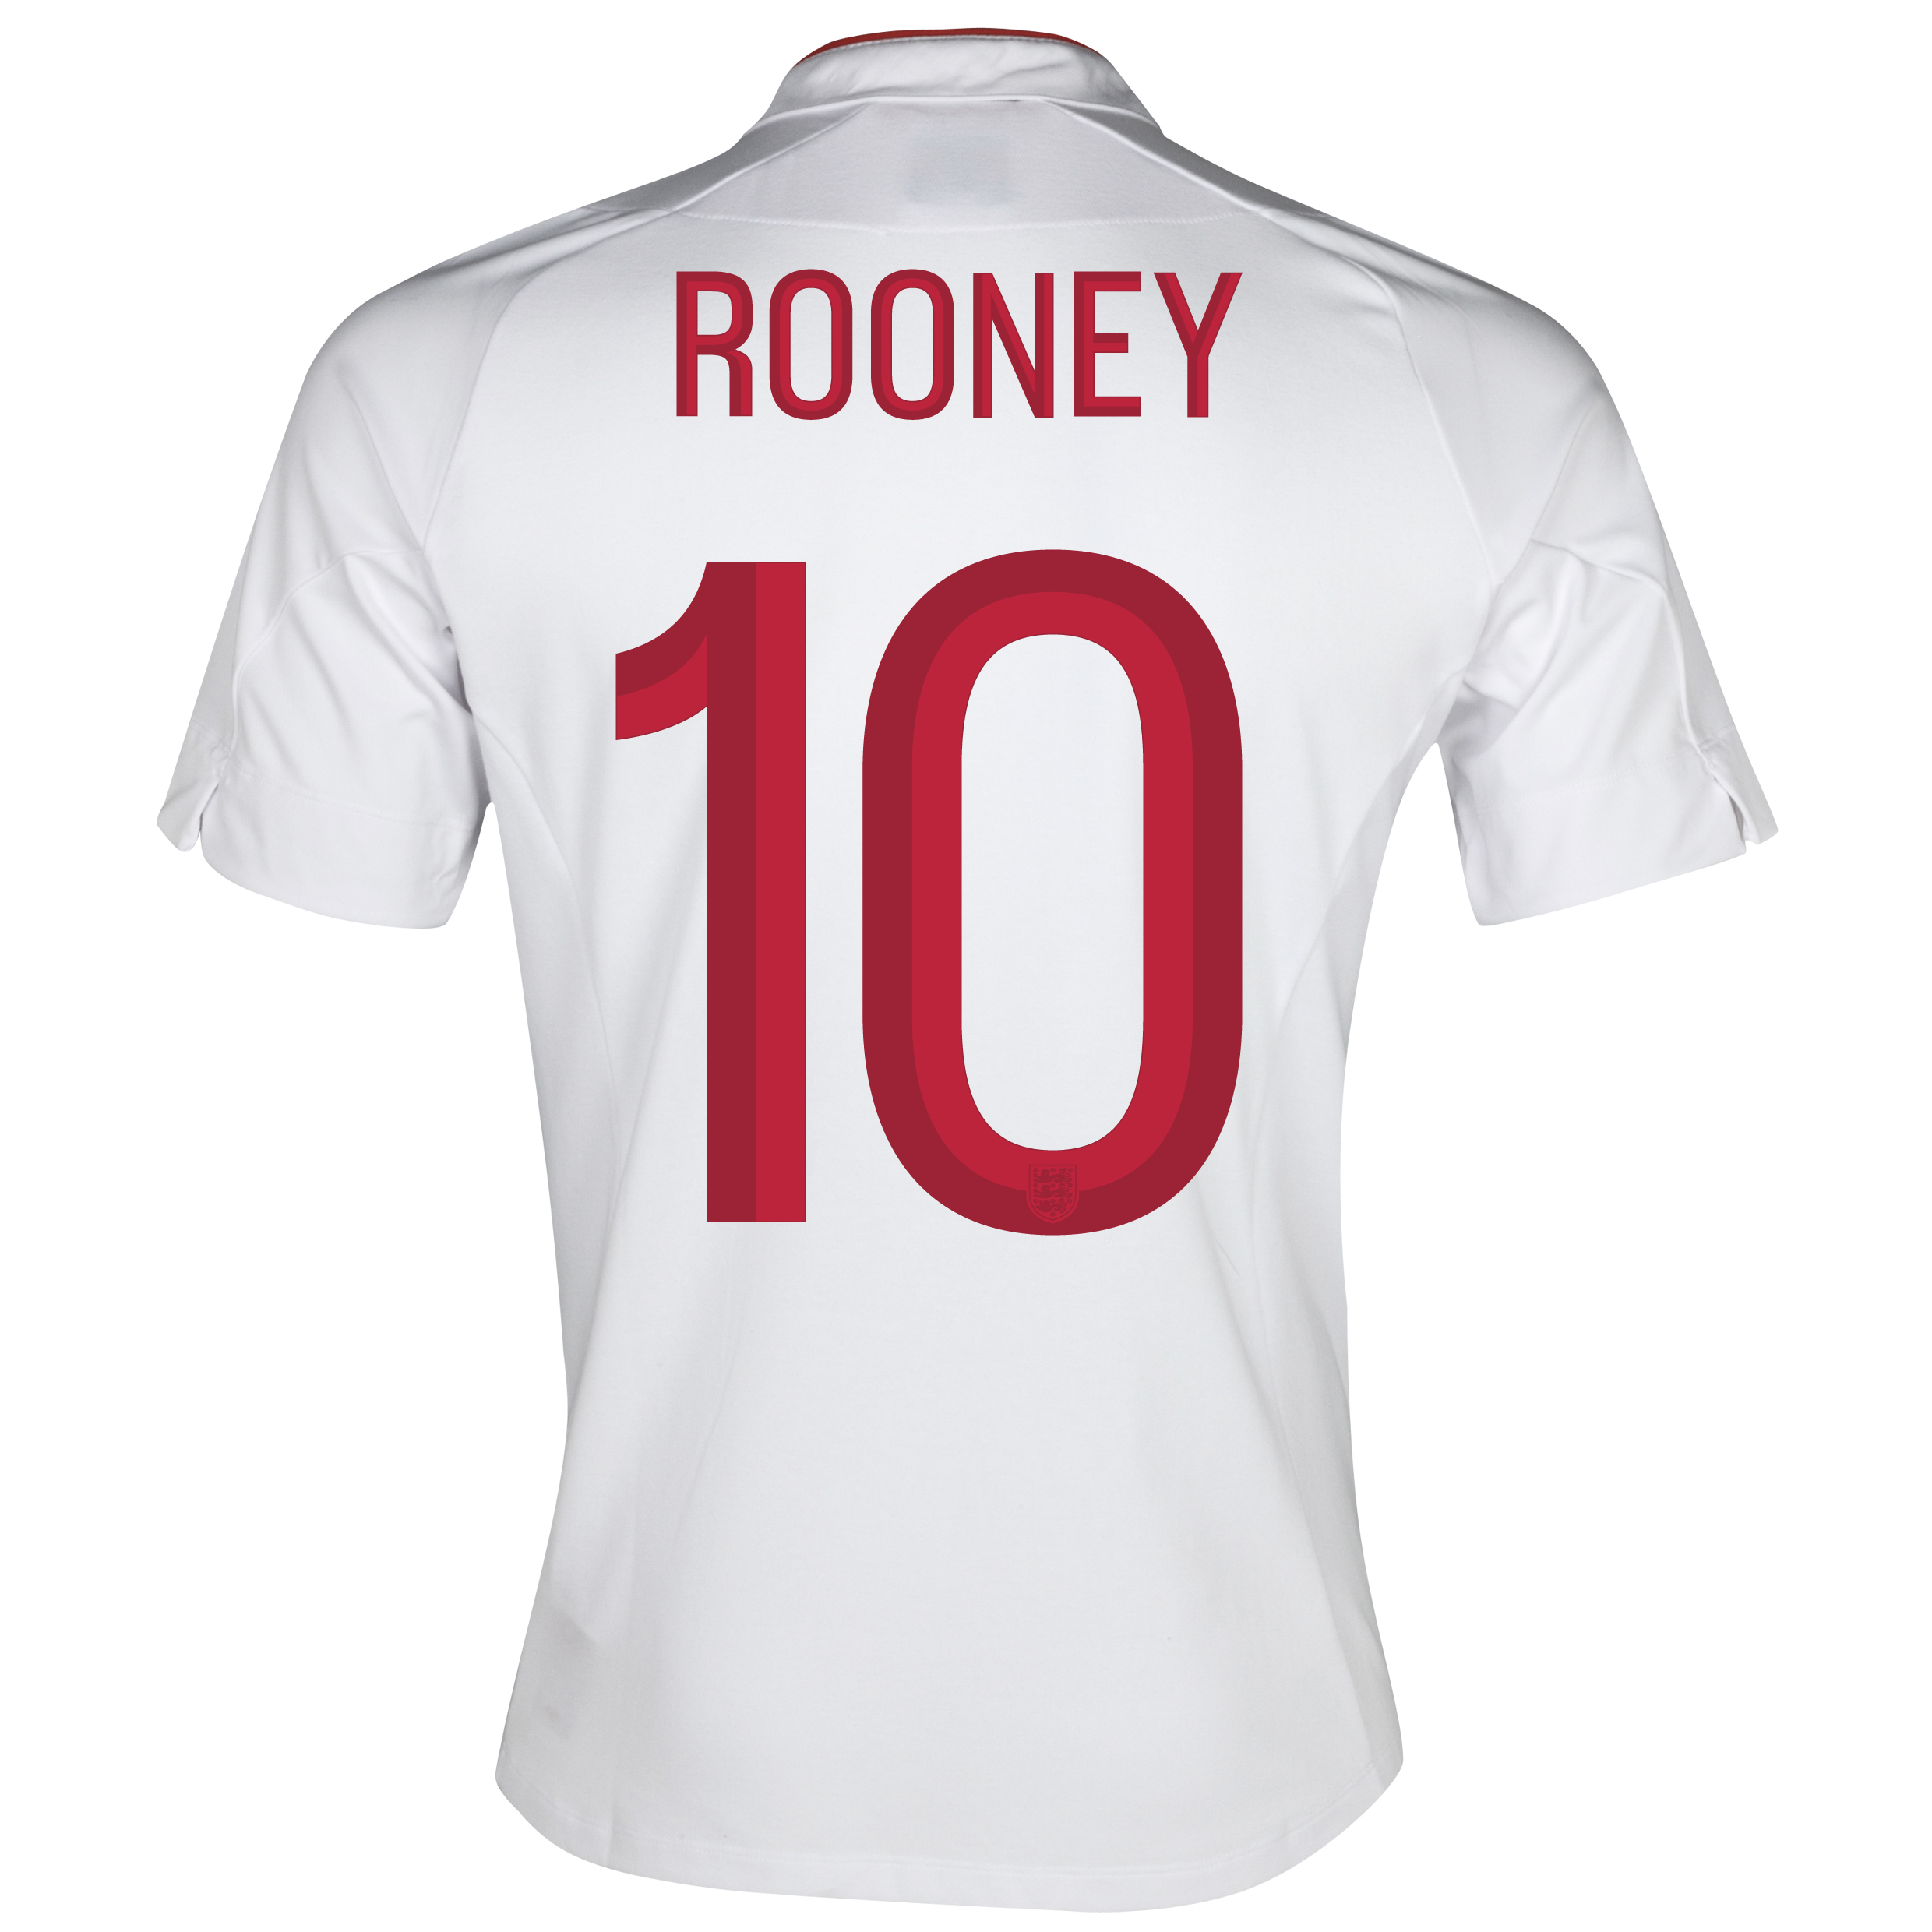 England Home Shirt 2012/13 - Boys with Rooney 10 printing